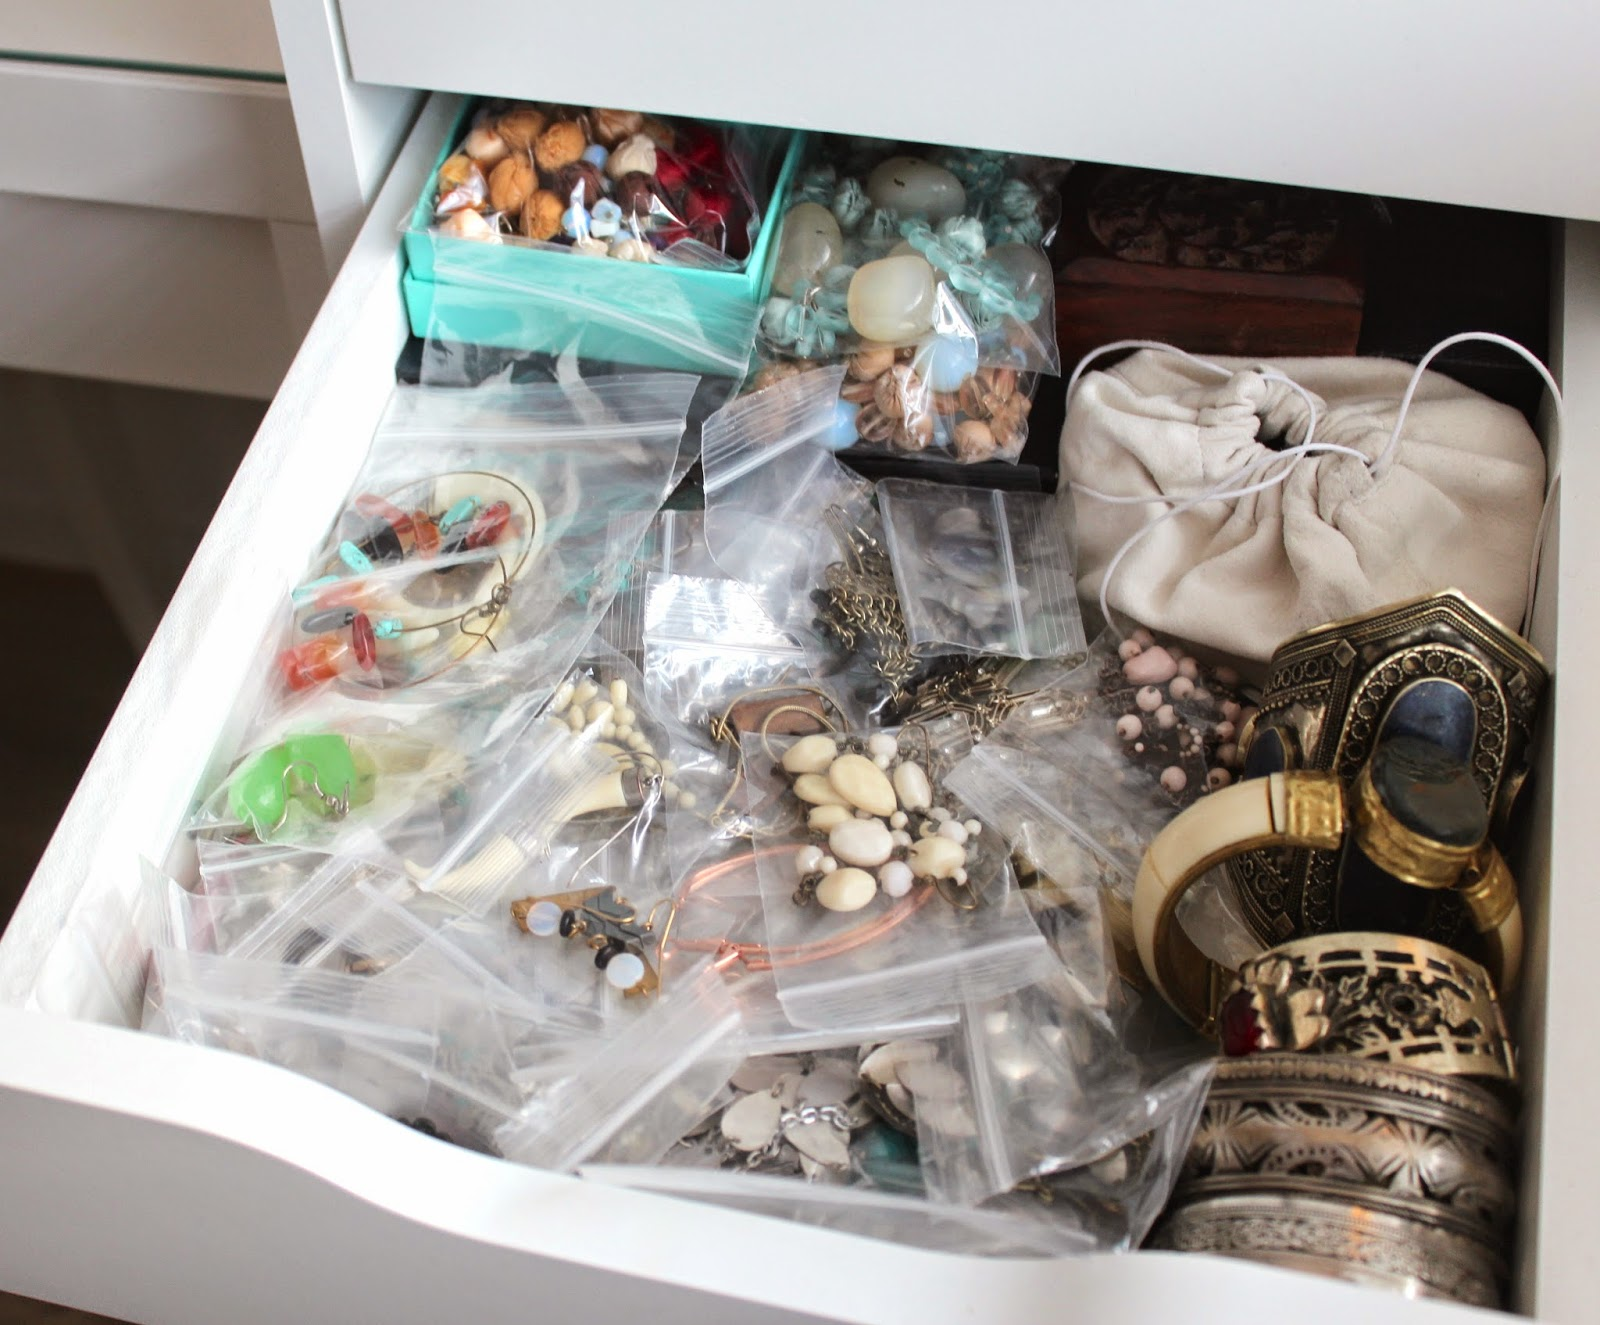 Earring Storage Date Night B U L E G A R M Bloglovin From Tiny Islands Ike Earrings I Have Stashed Them All Inside One Of The Ikea Alex Unit Drawers Alongside Other Bits Jewellery And Its Working Treat Really Love That